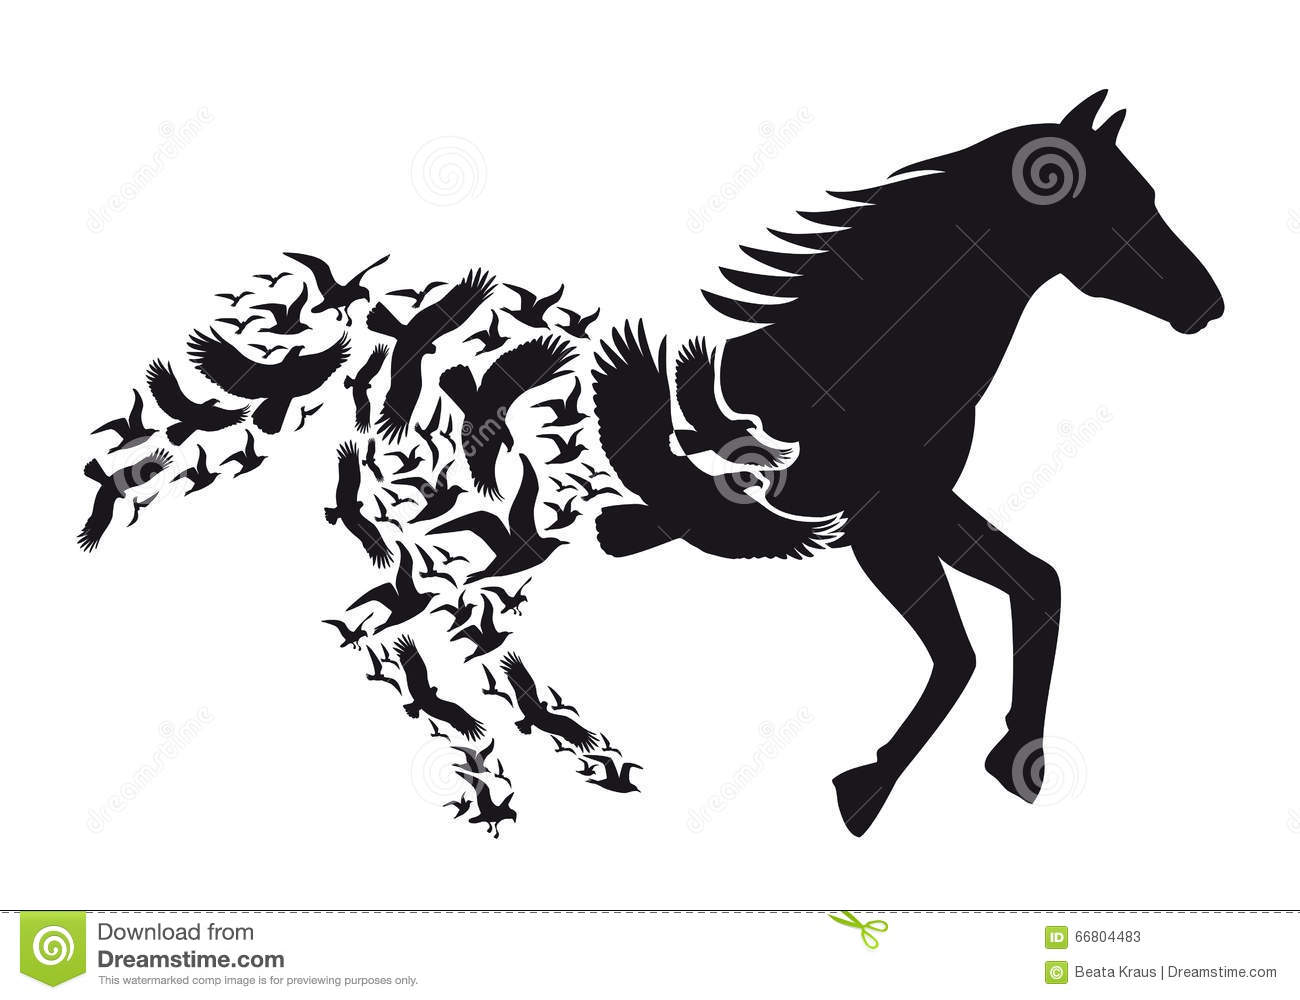 Stock Illustration Horse Flying Birds Vector Black Silhouette Illustra...